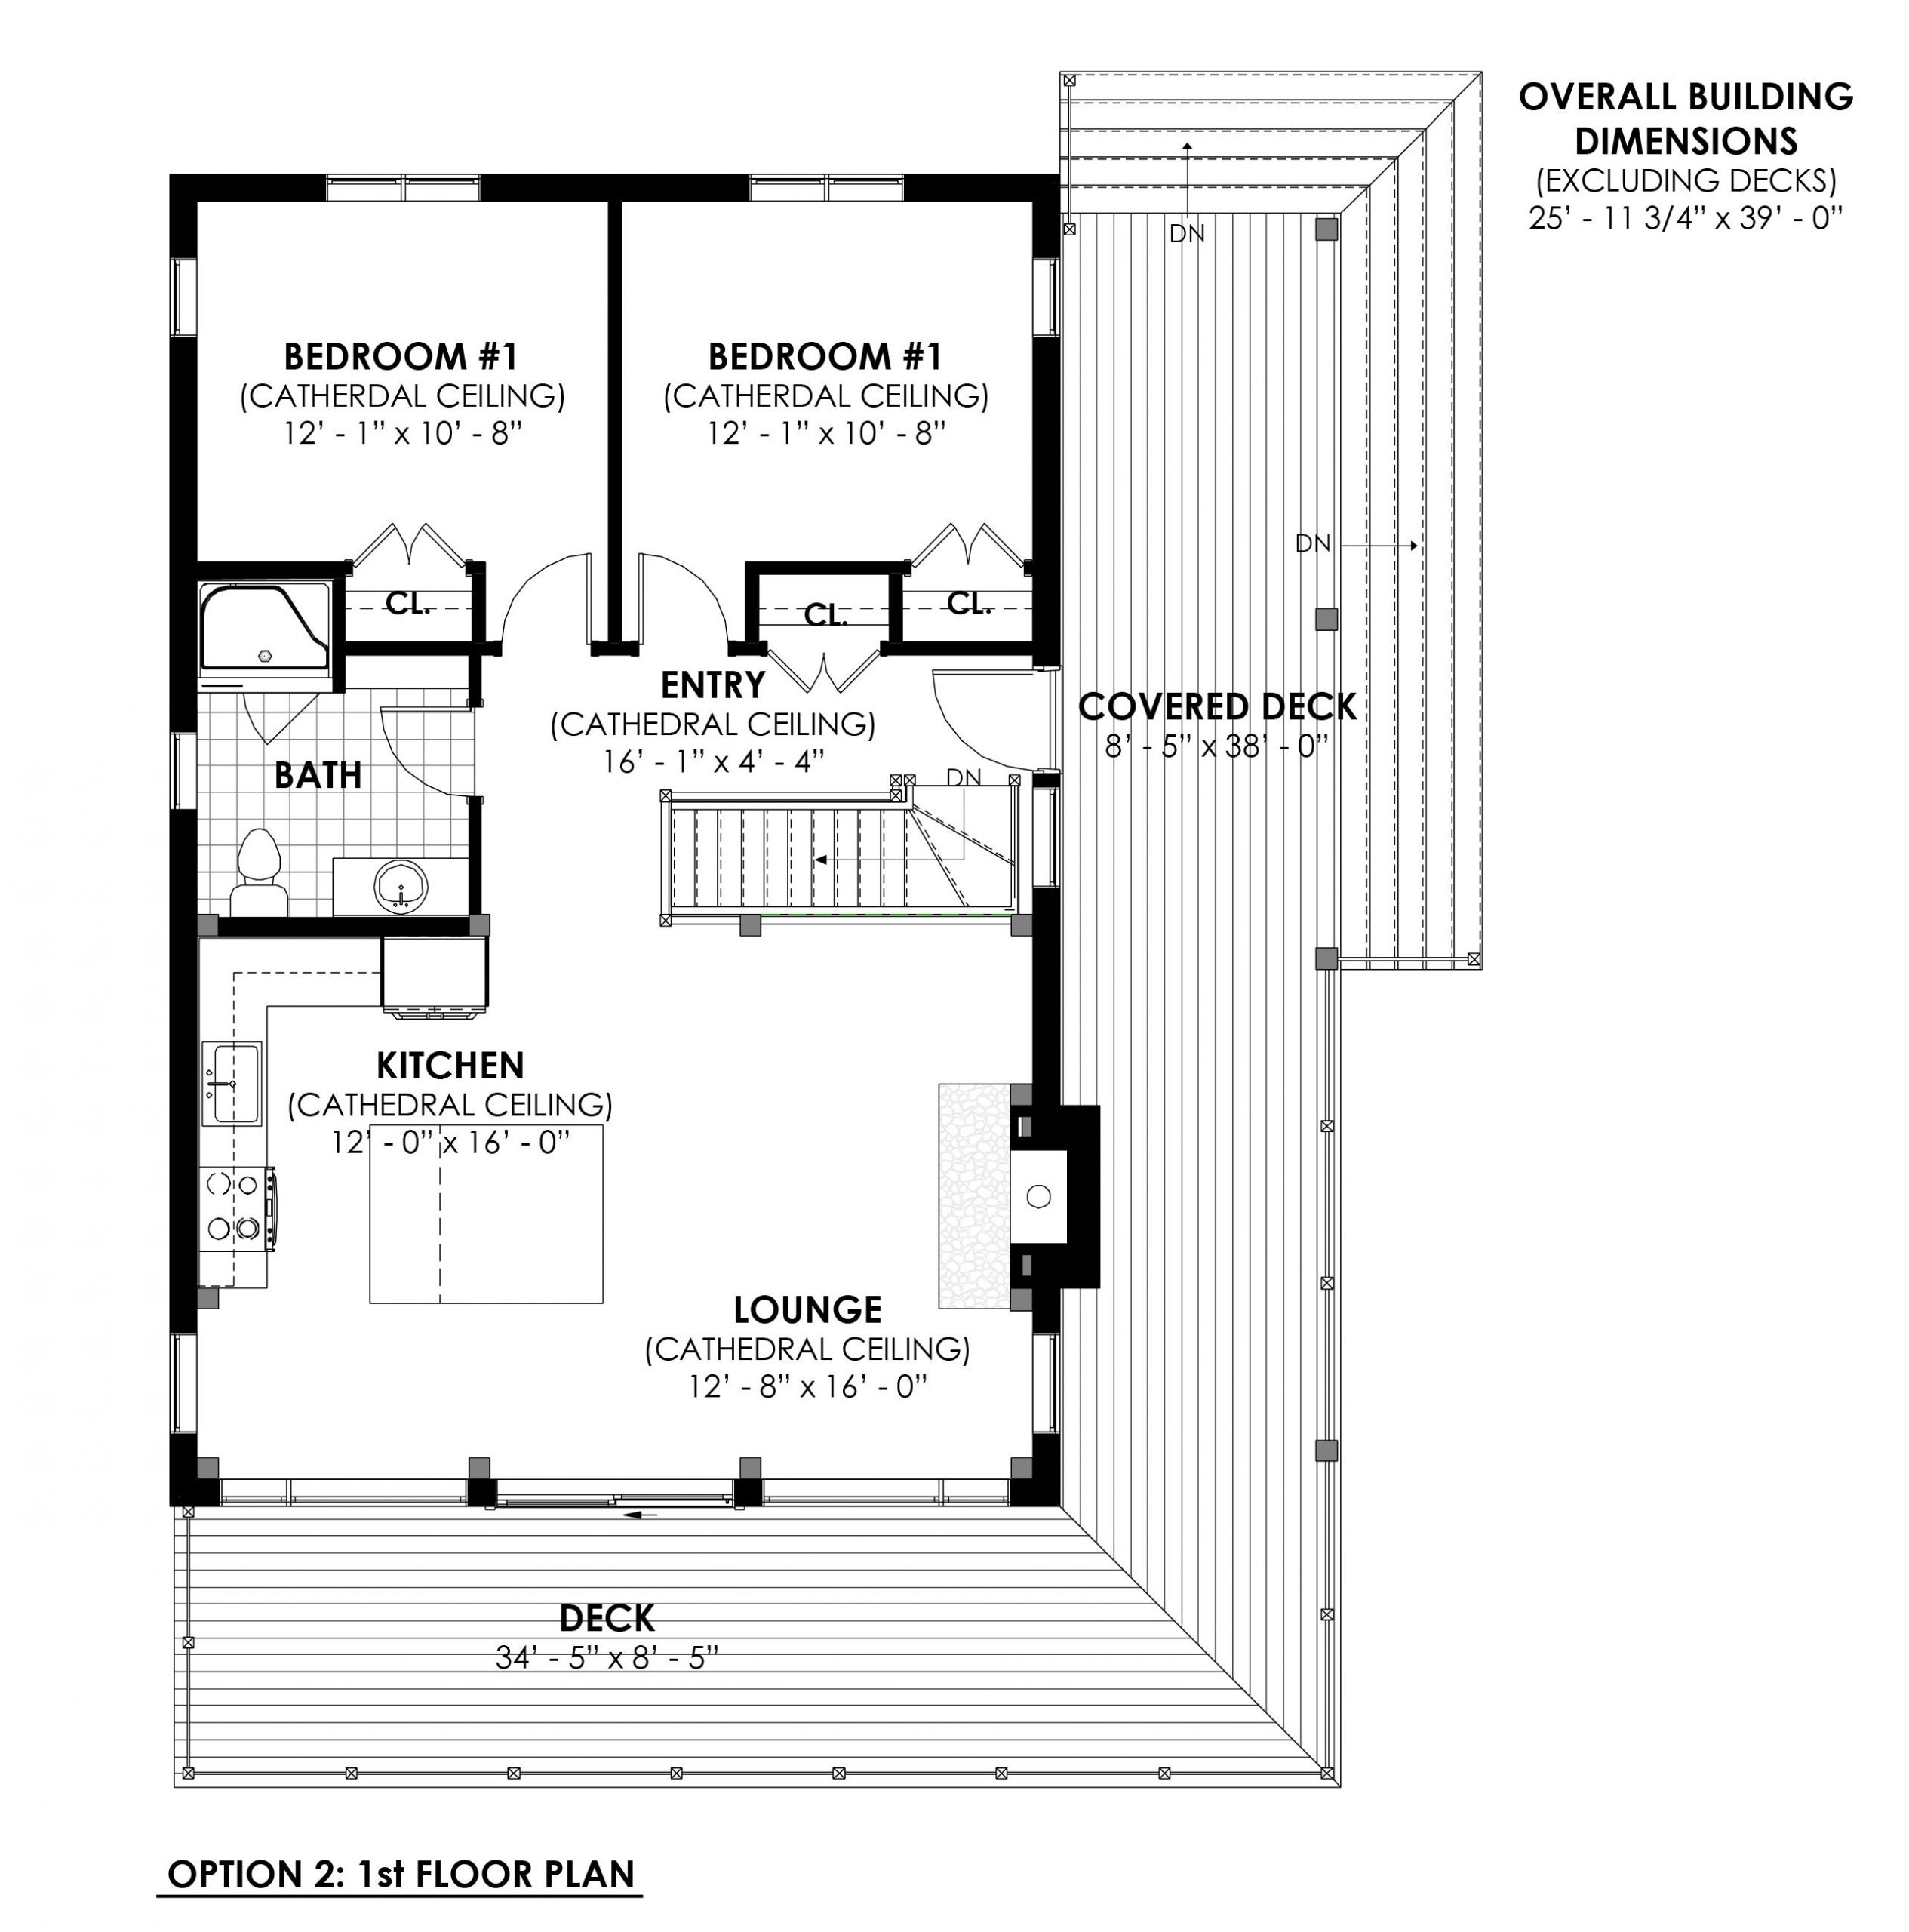 Timber Frame Open Concept House Plans   The Rouge   Normerica   Floor Plans, First Floor, Option 2